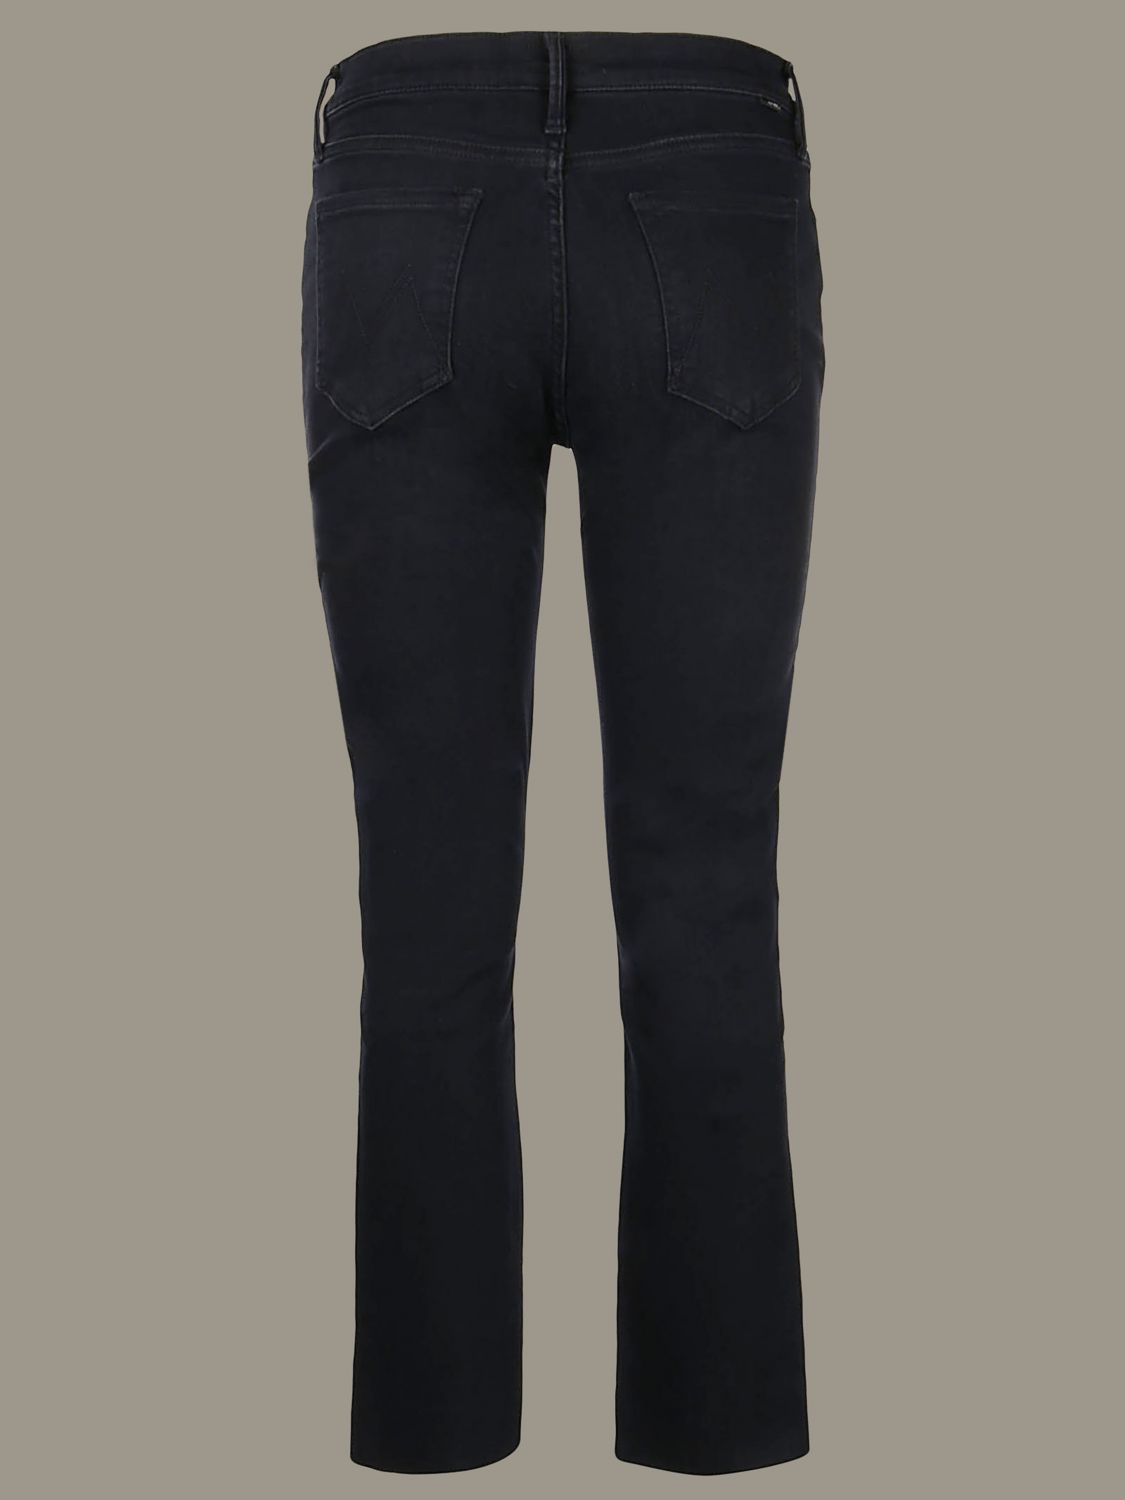 Jeans mujer Mother negro 2